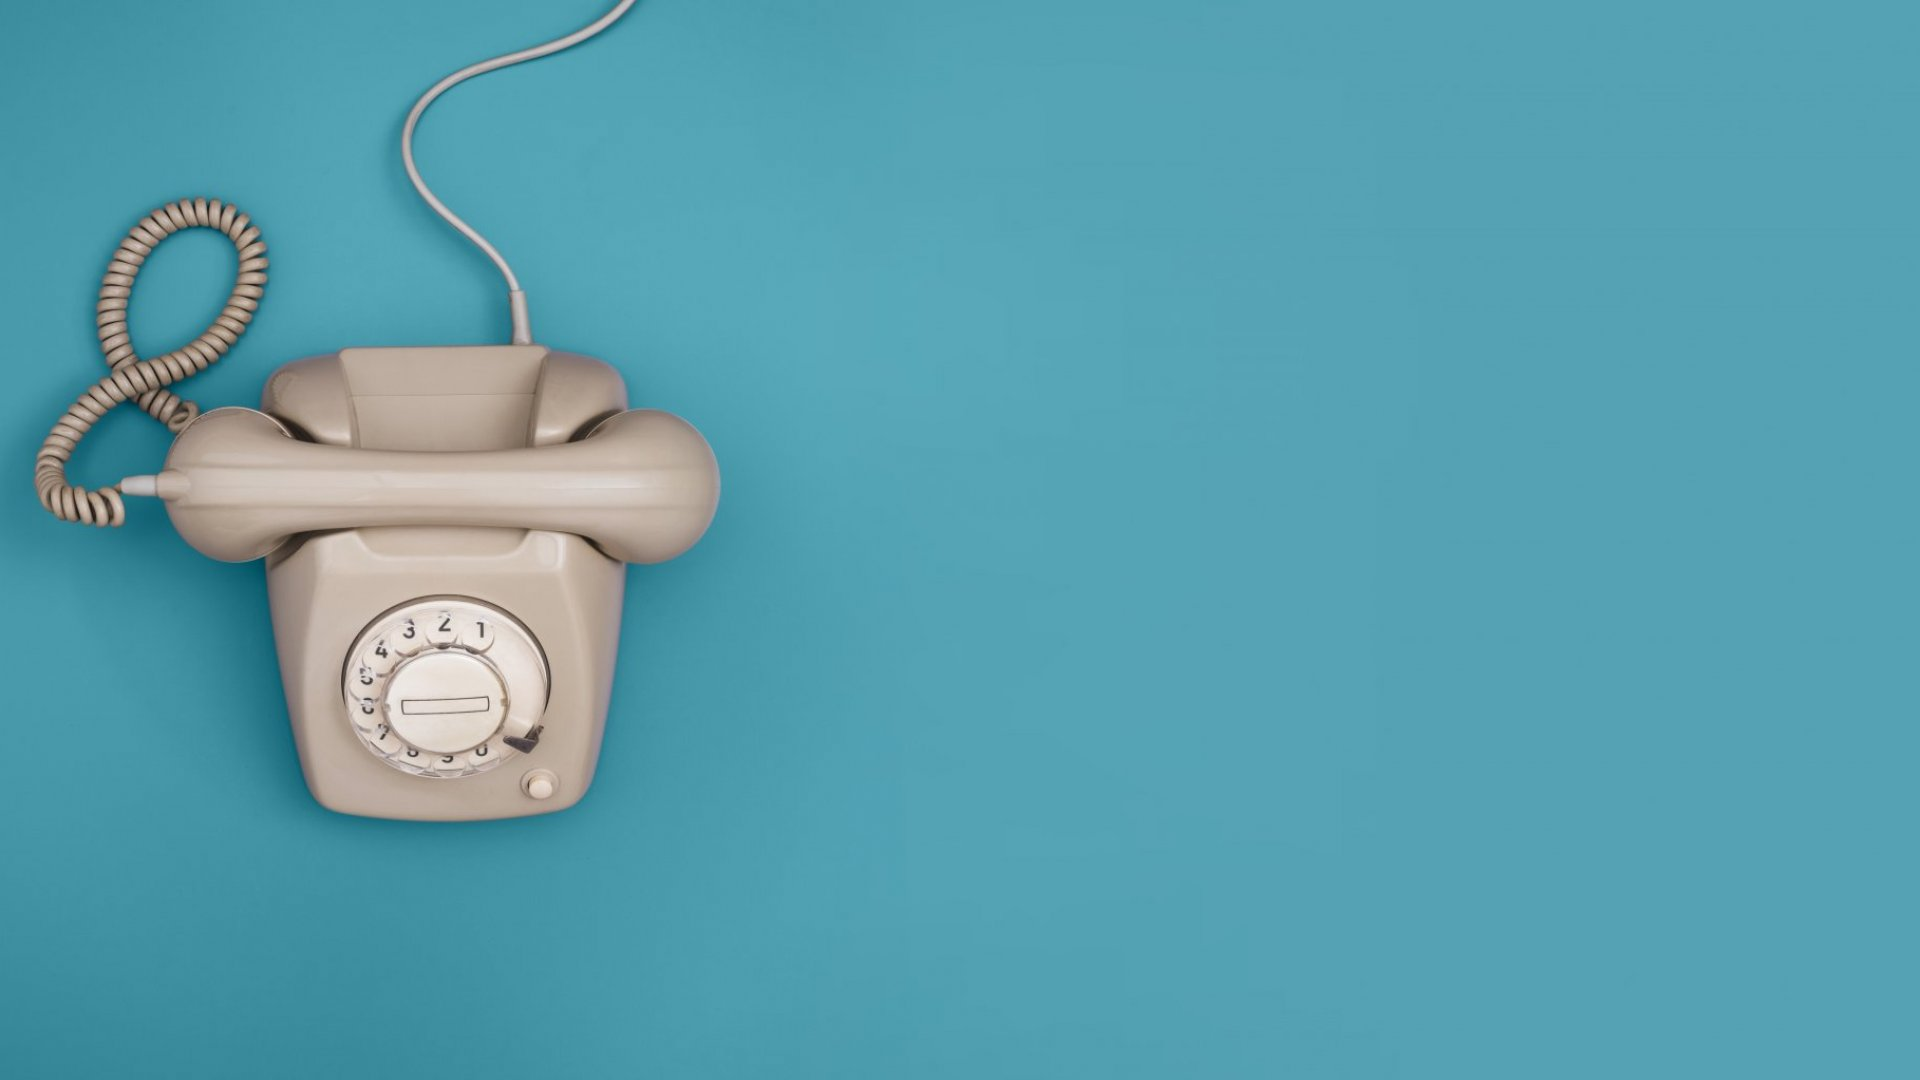 3 Simple Ways to Put the Human Touch Back Into Customer Support